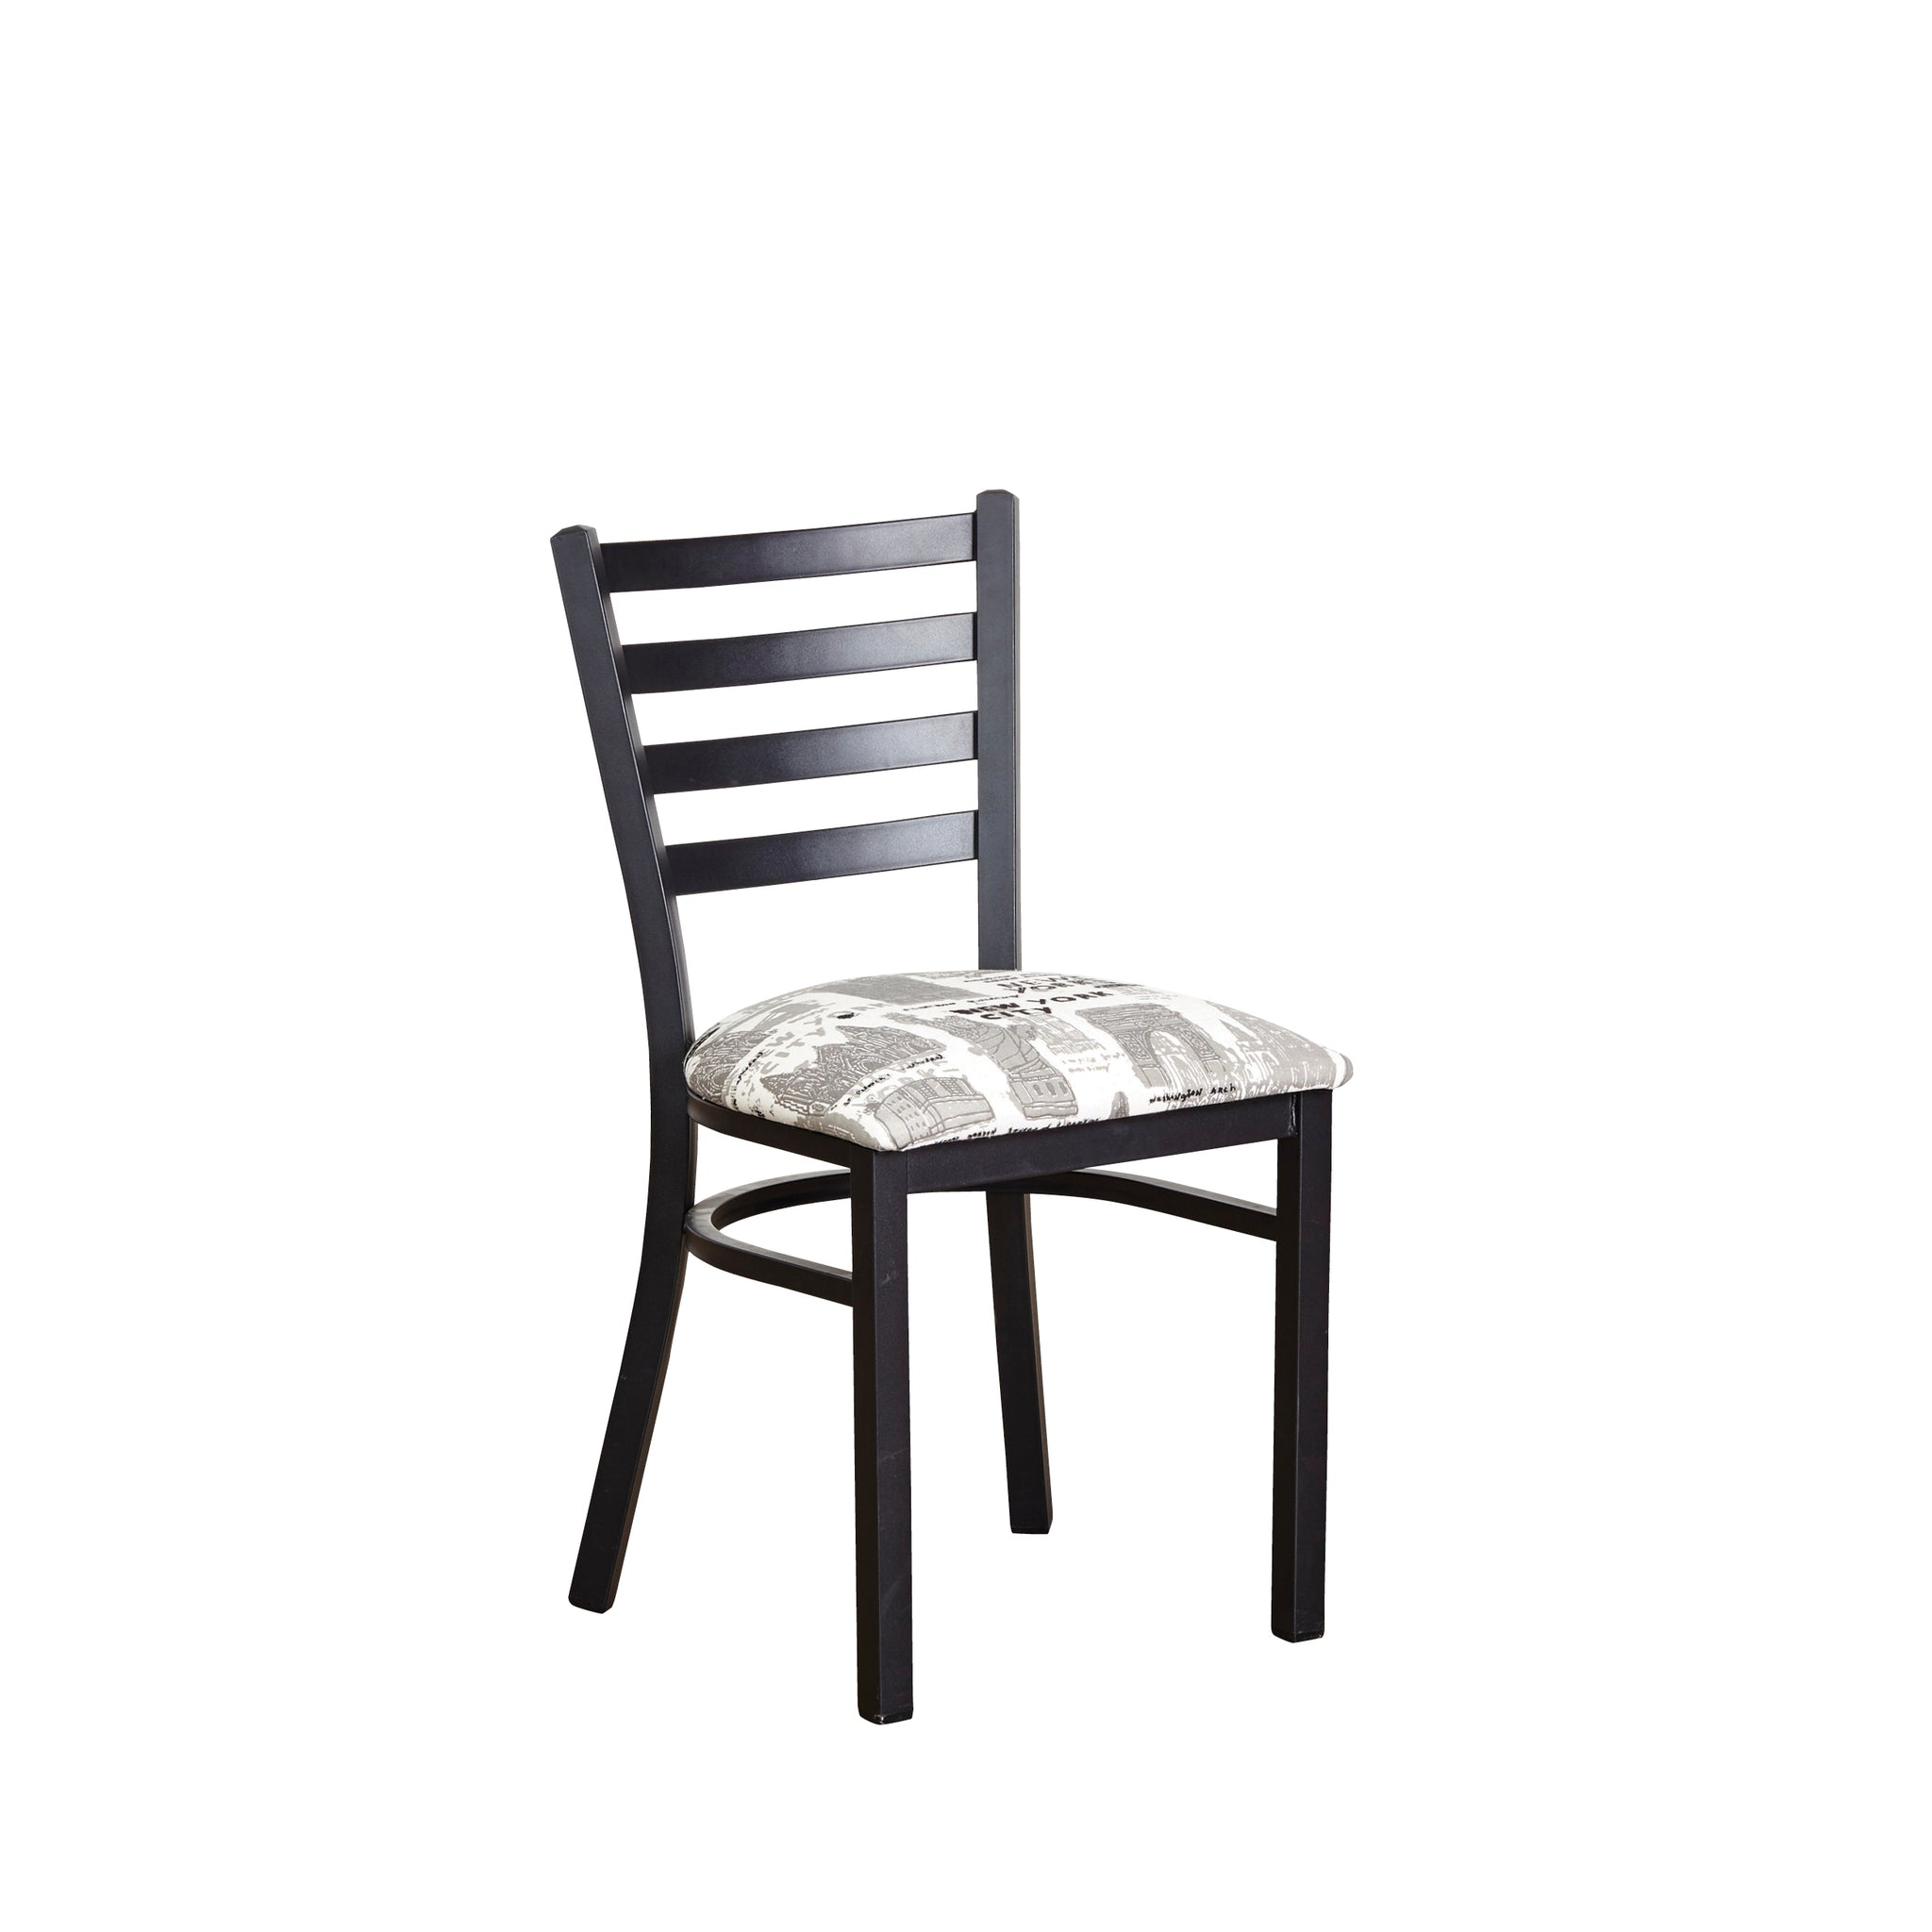 Hedcor Latina restaurant chair